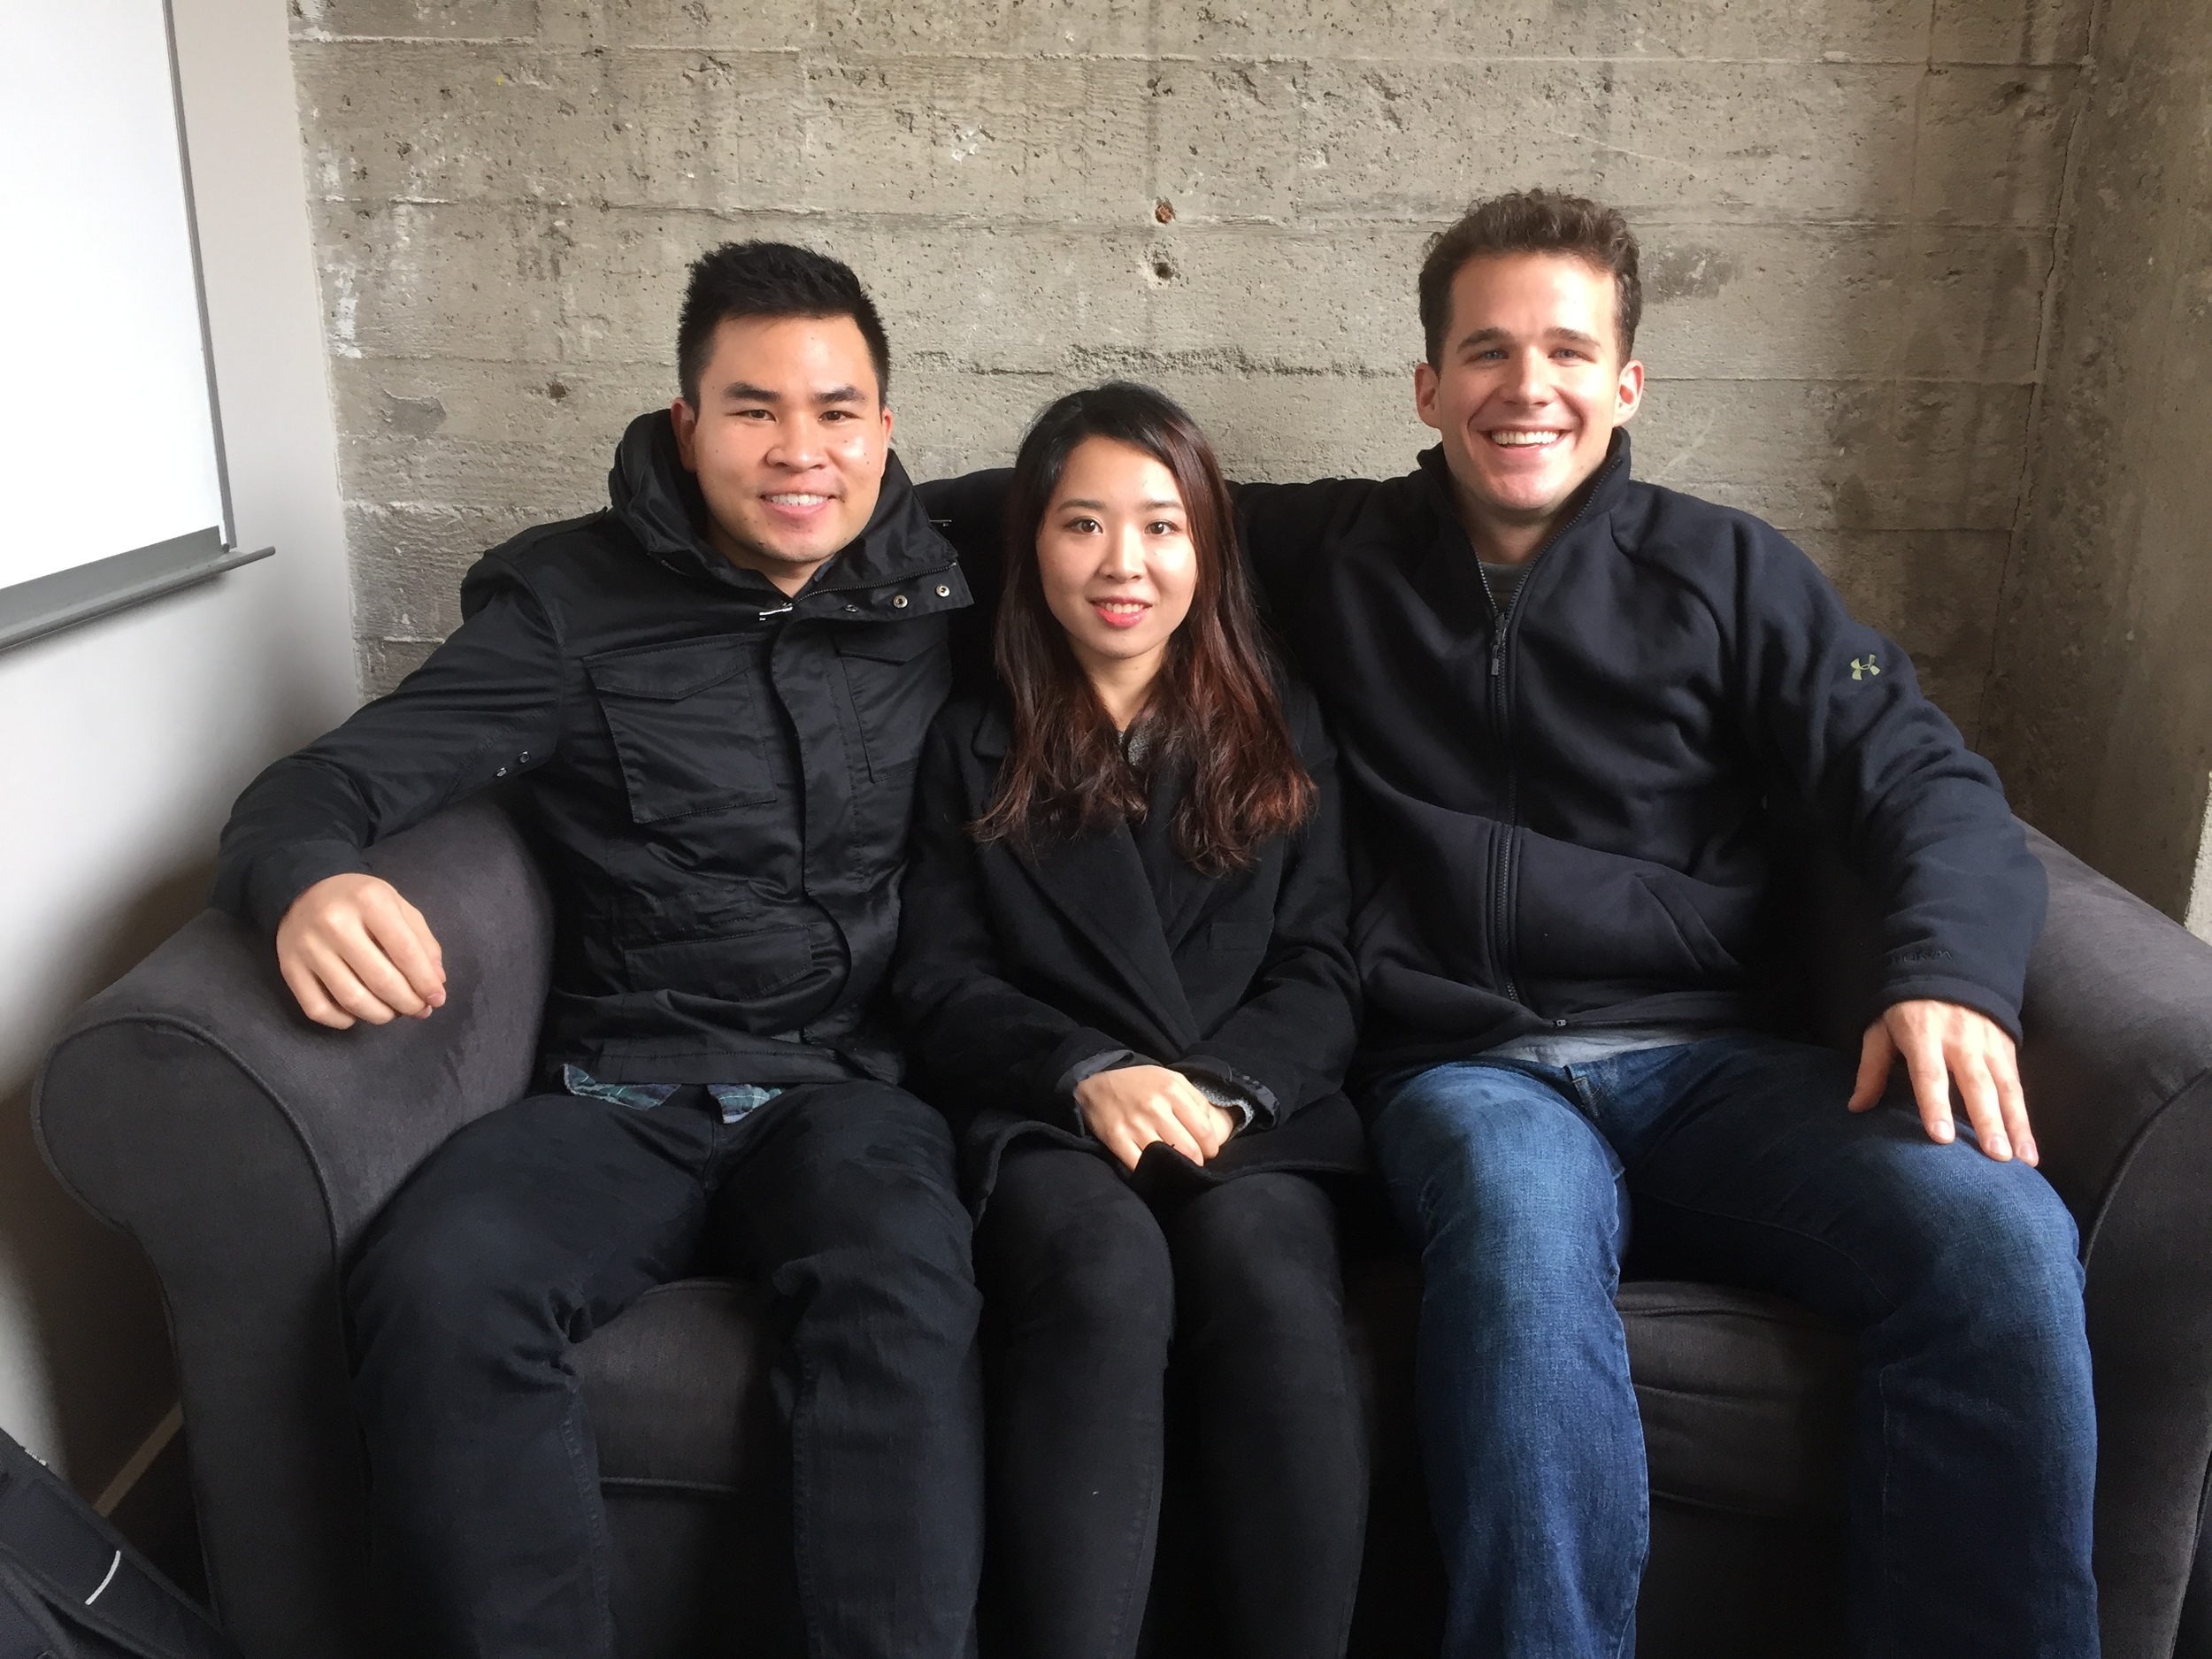 From left, Nick Fujita, Sunyoung Kim and Charlie Harrington built Wormie, an iOS app that allows users to request video content from anywhere in the world.